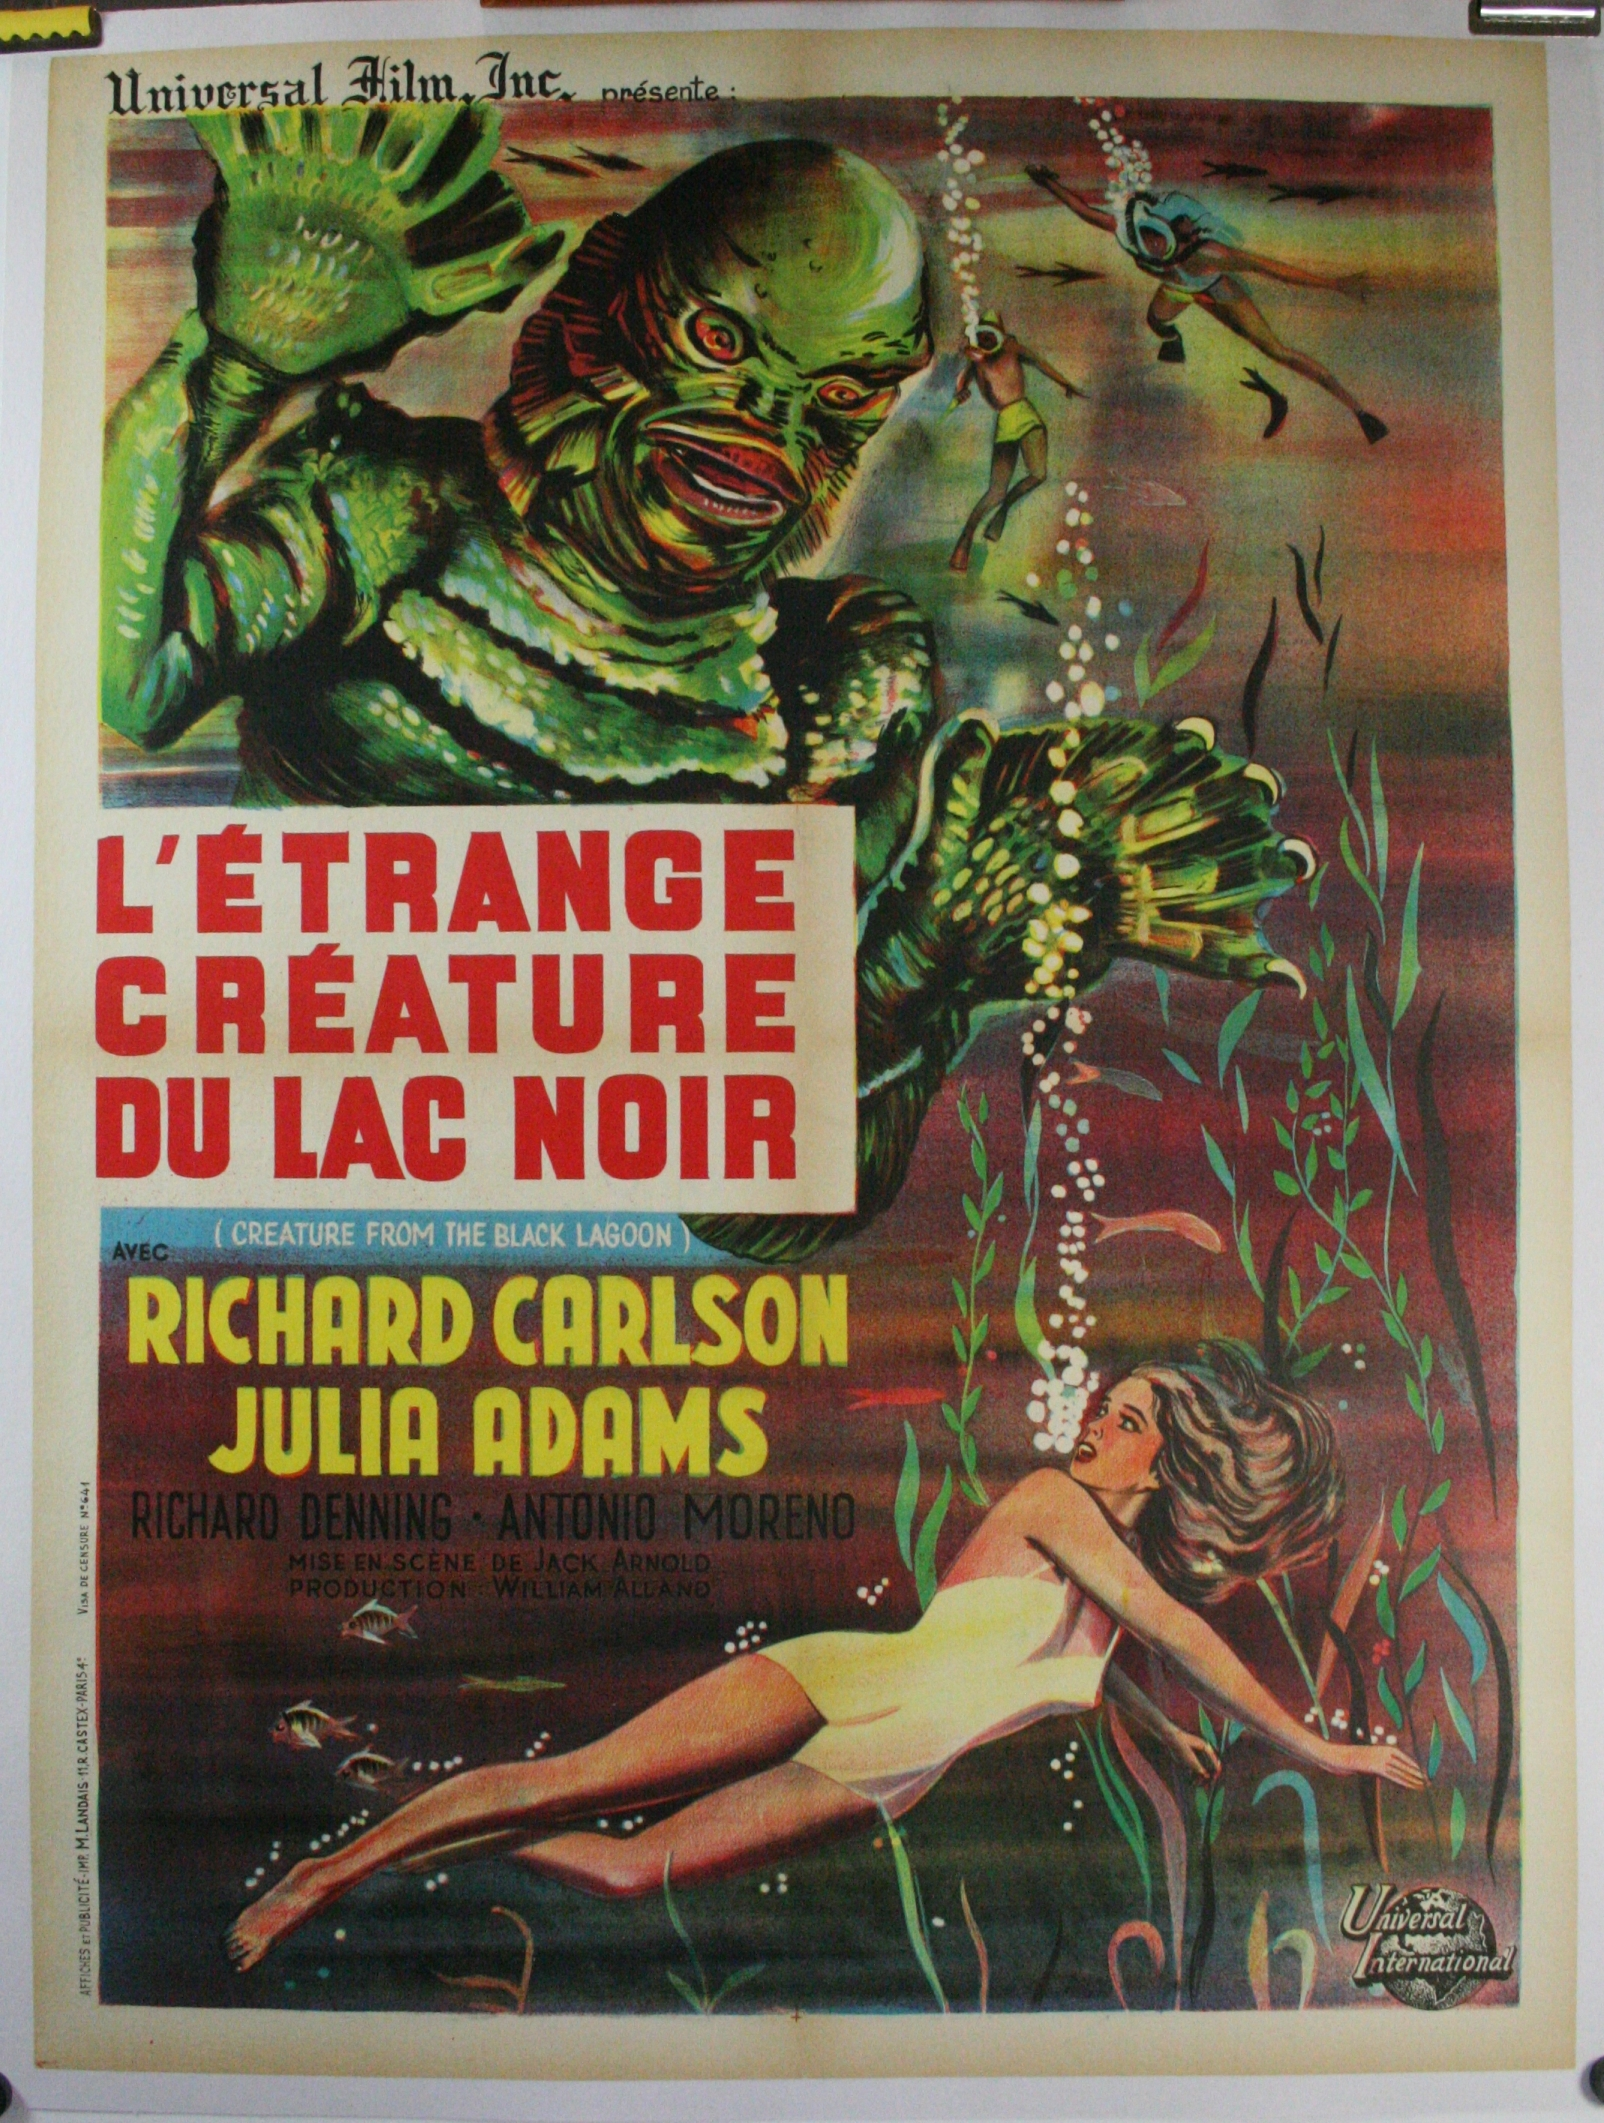 Creature from the black lagoon LB-C75